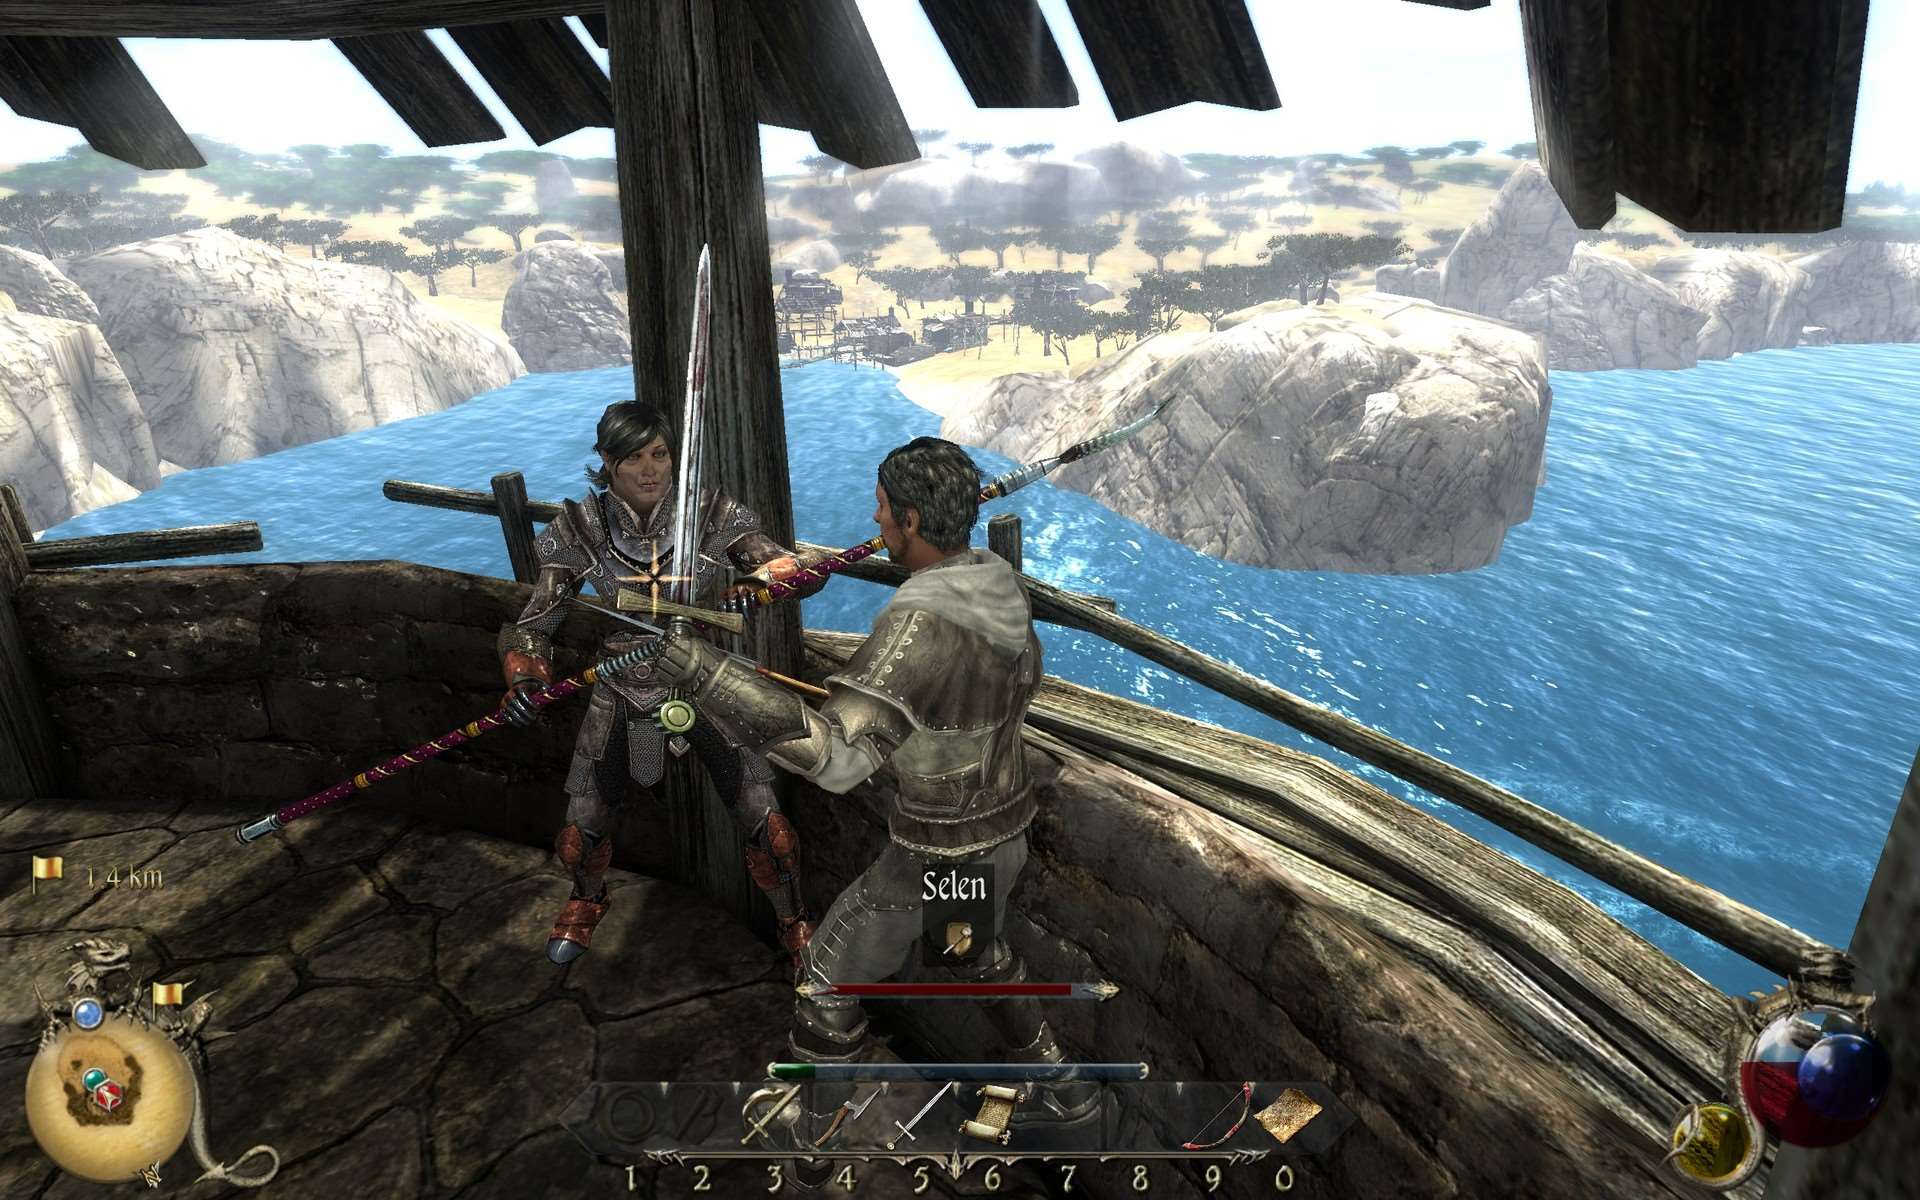 Download free two worlds game review ps3 software redbackup.